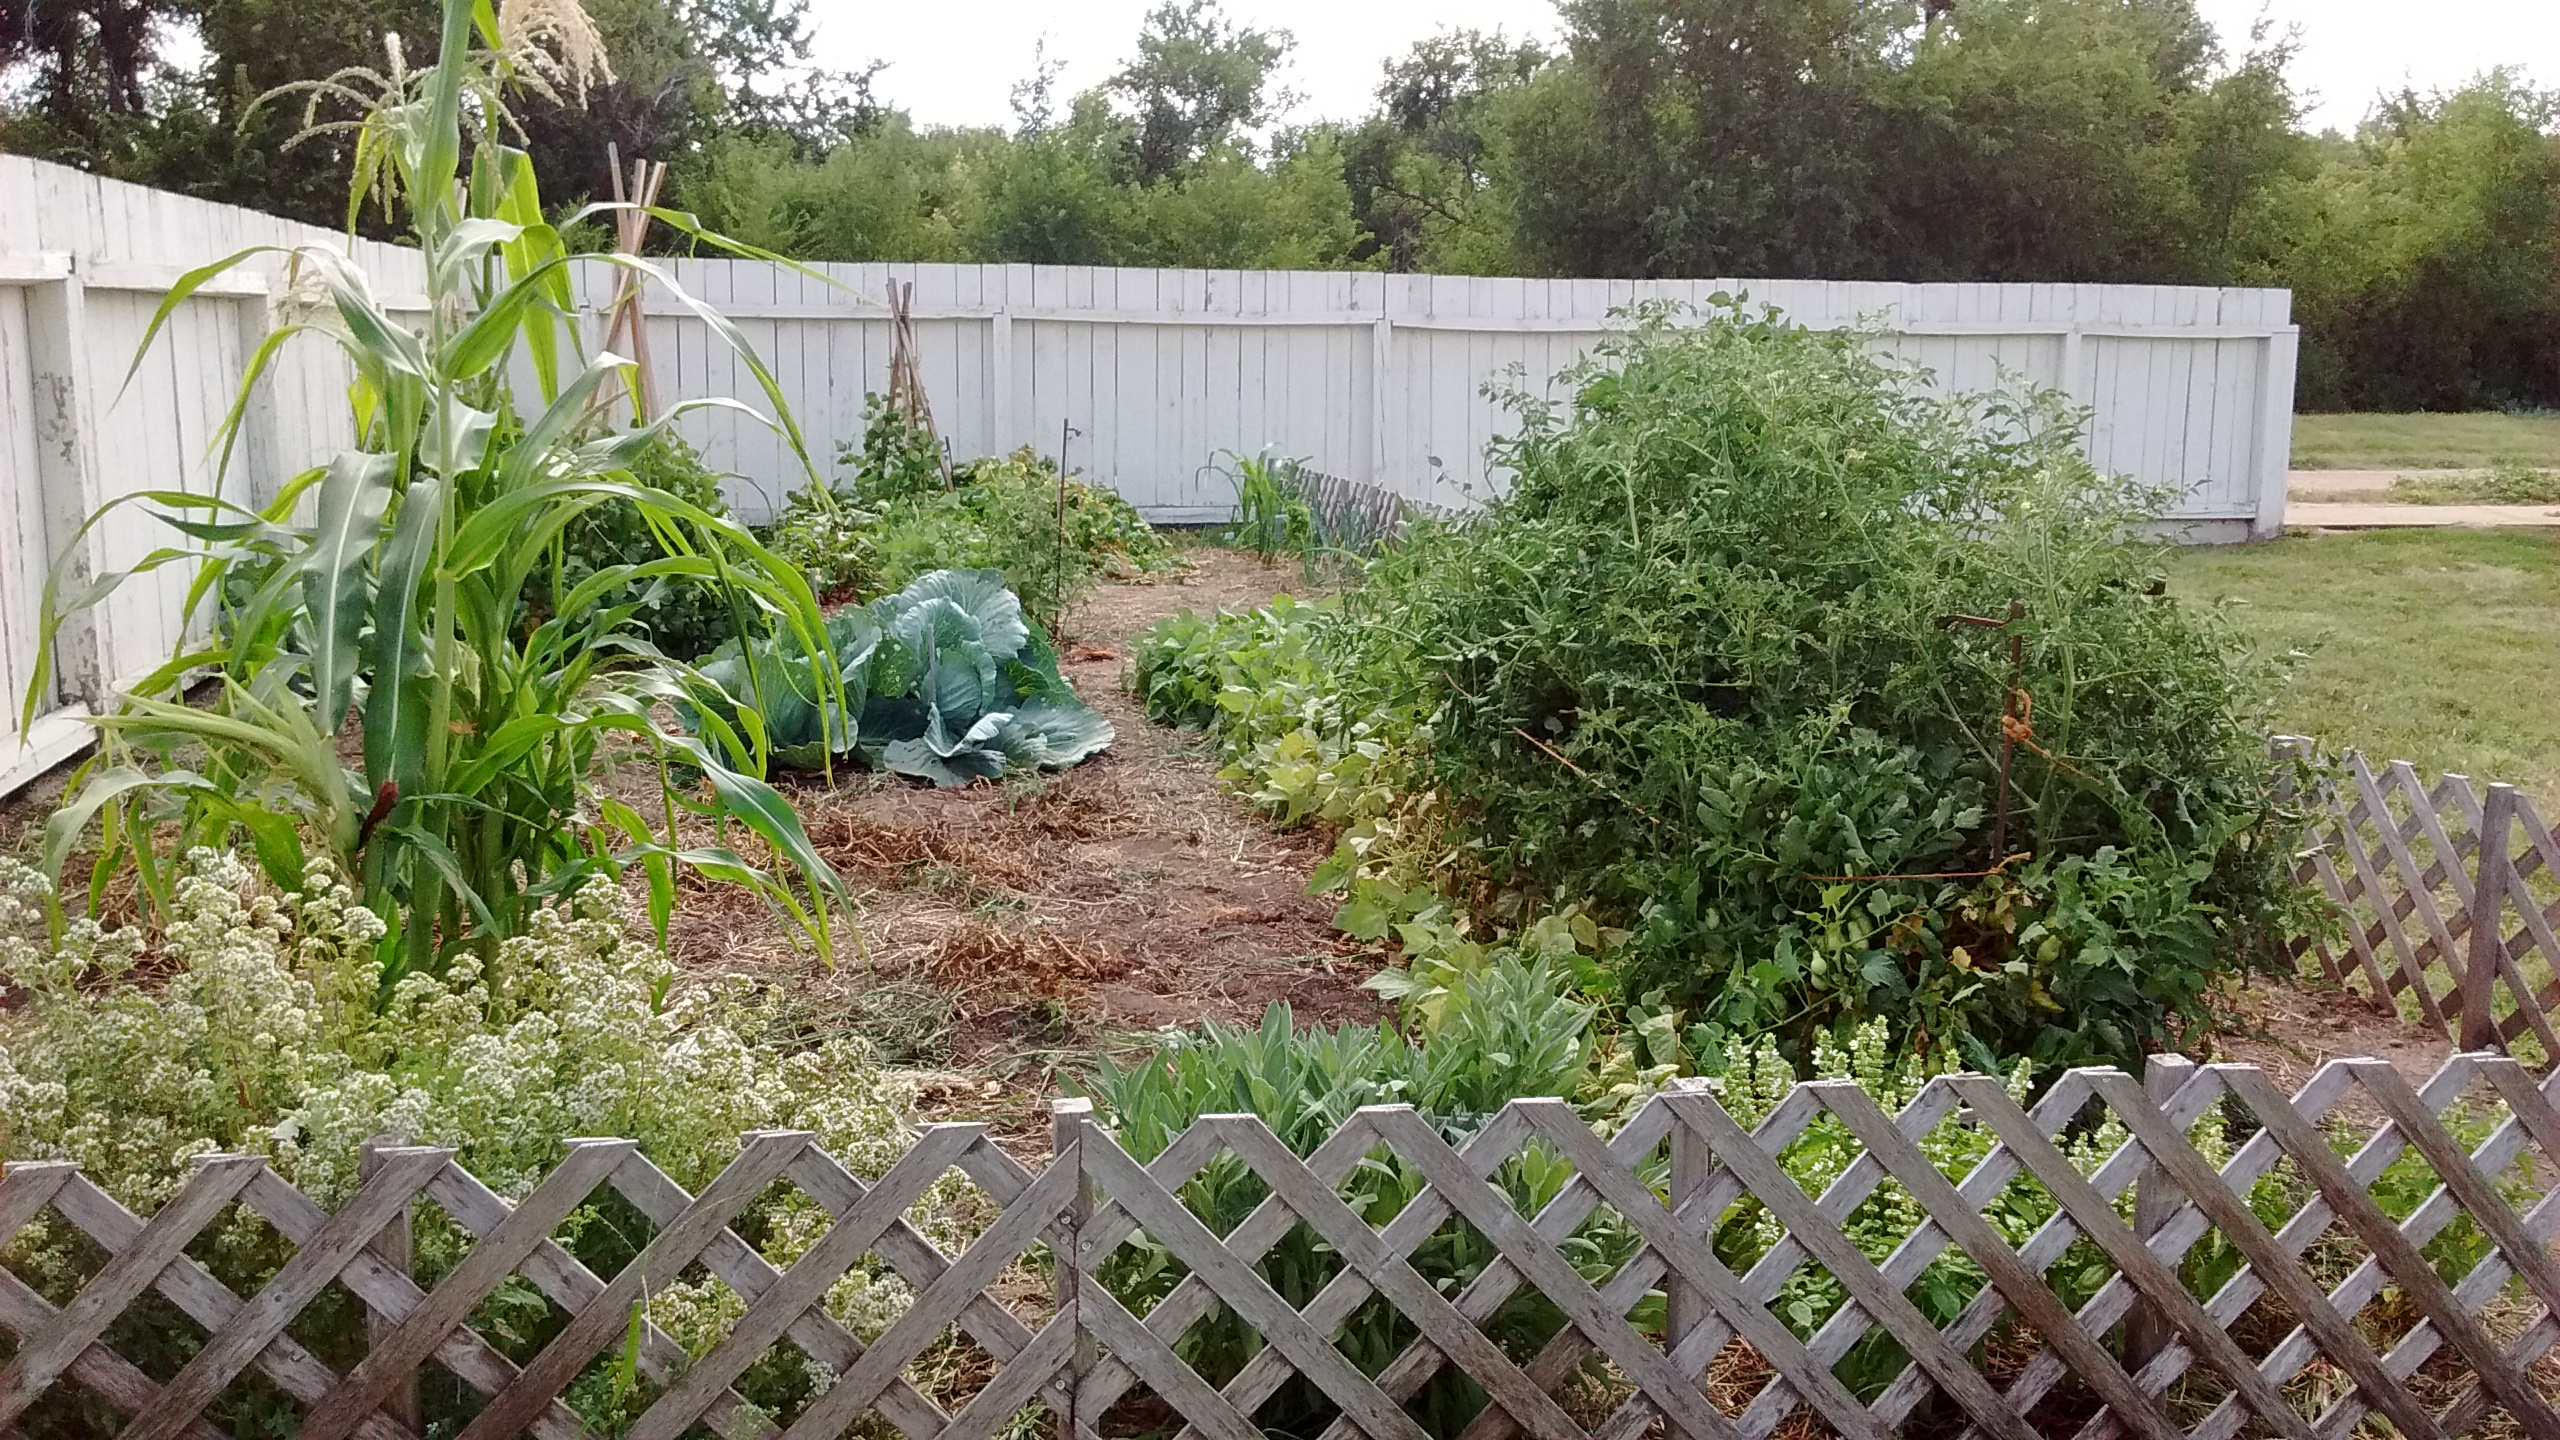 Fort vegetable garden in early July.